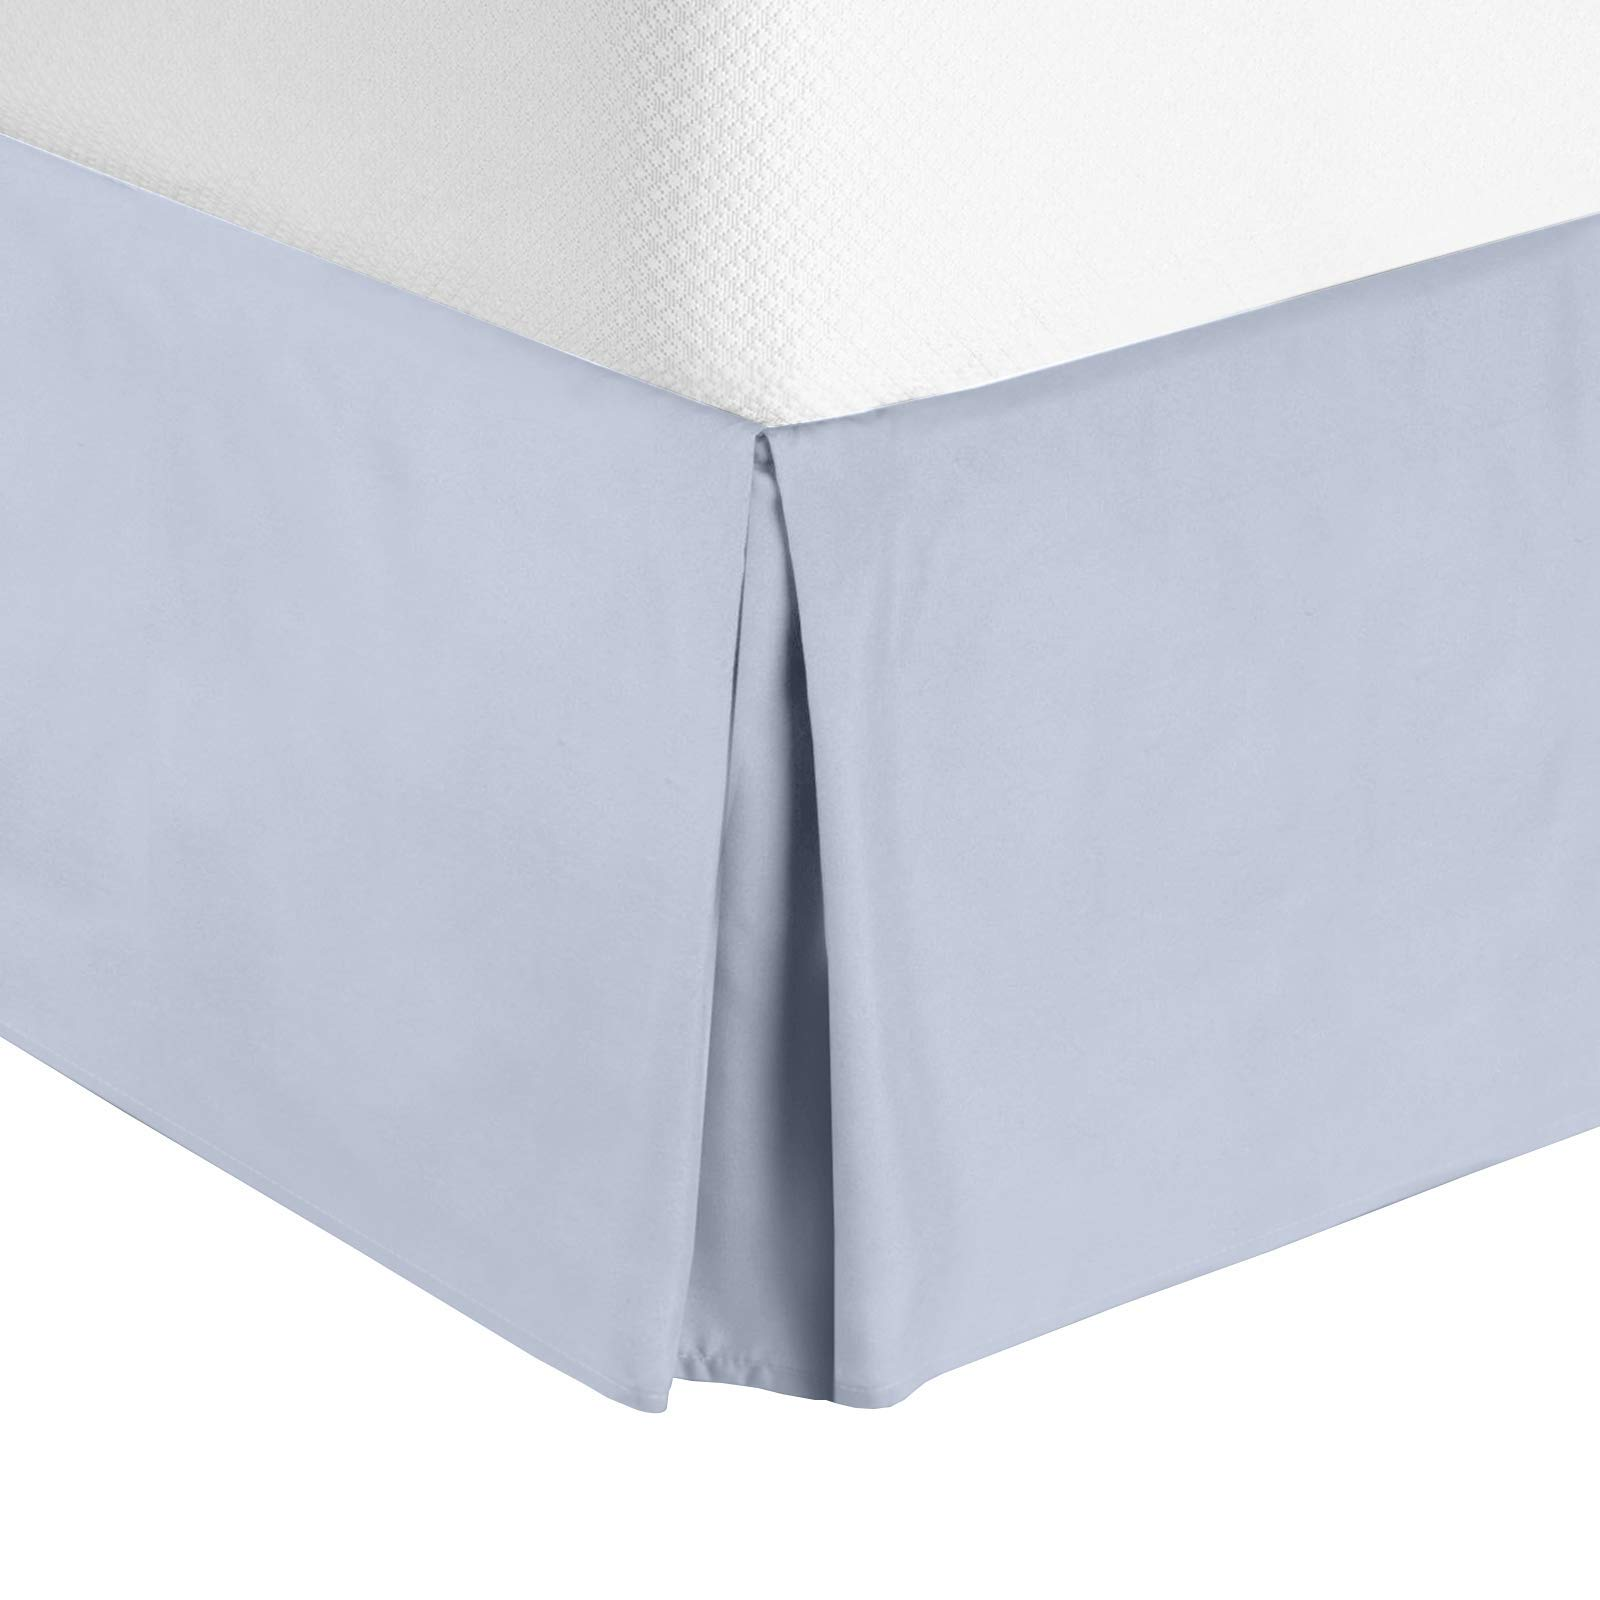 Nestl Bedding Bed Skirt - Soft Double Brushed Premium Microfiber Dust Ruffle - Luxury Pleated Dust Ruffle, Hotel Quality Sleek Modern Bed Skirt, Easy Fit with 14 in Tailored Drop, Queen, Ice Blue